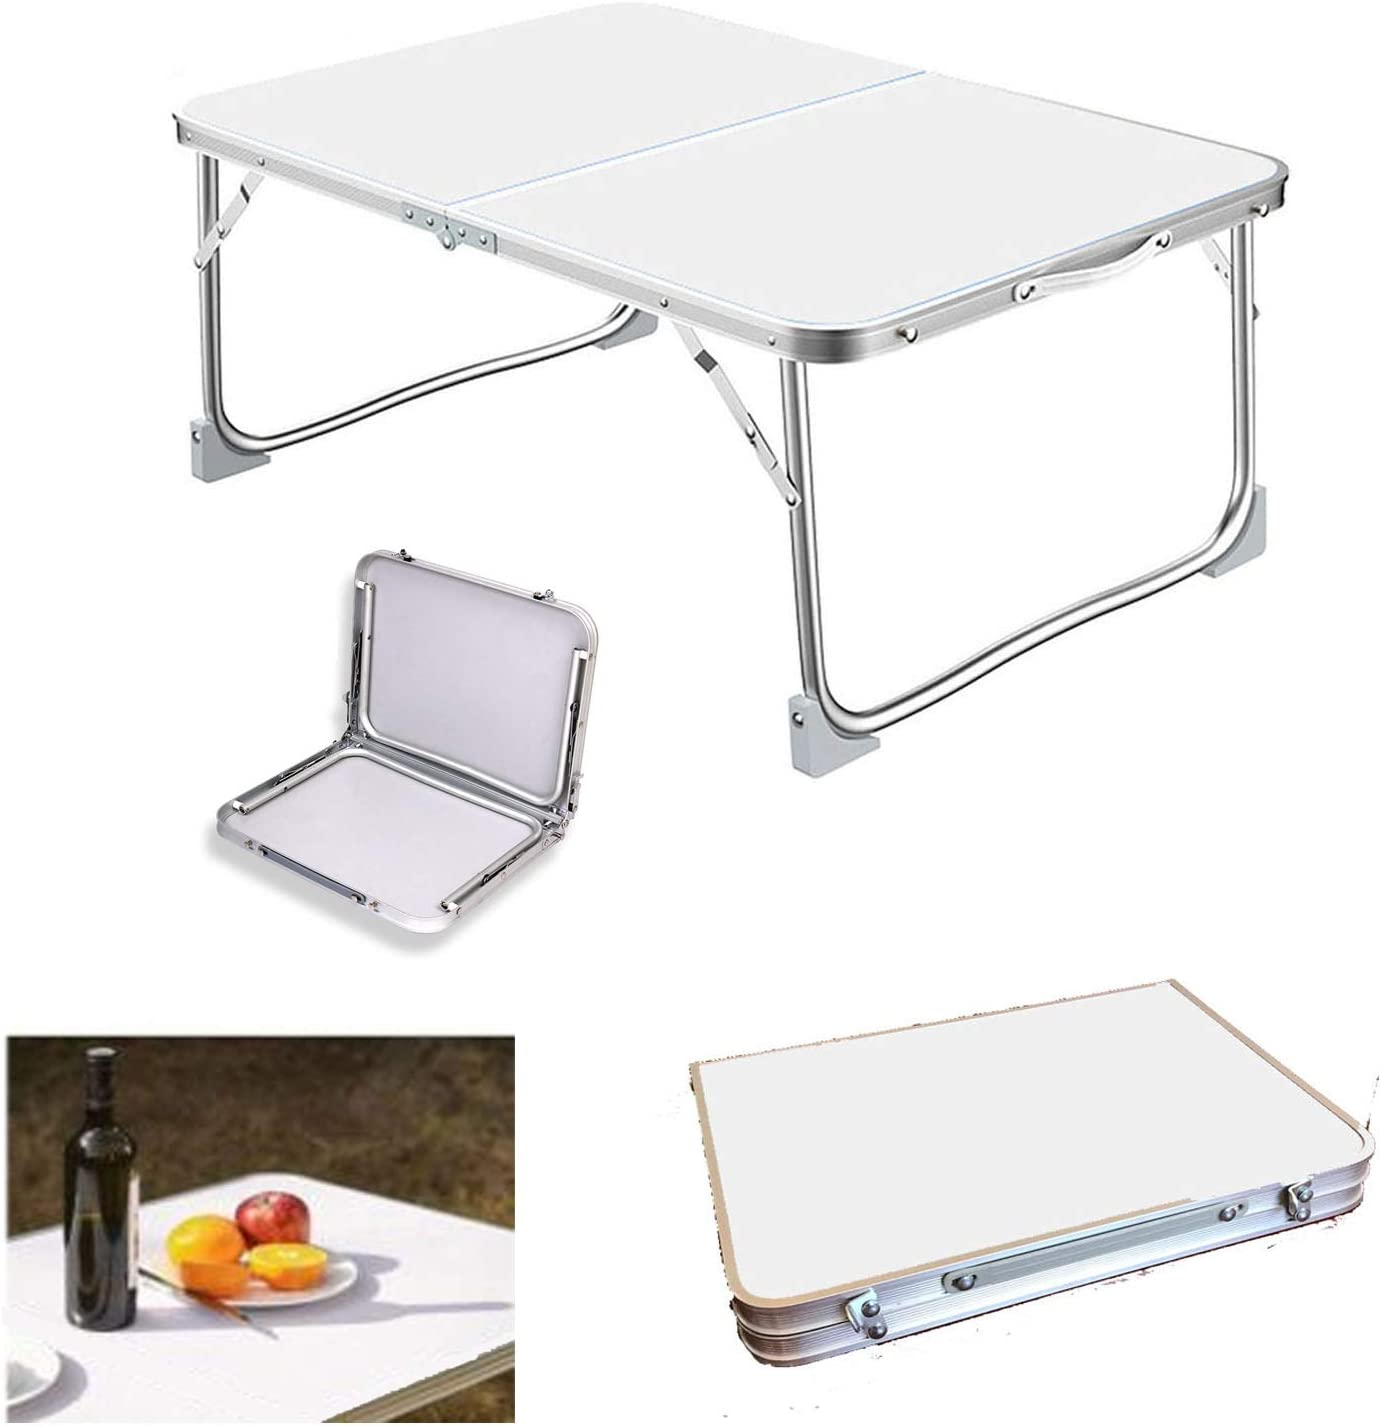 Folding Gifts Picnic Challenge the lowest price of Japan ☆ Table 60x40x26cm Lightweight Ha Aluminum Portable